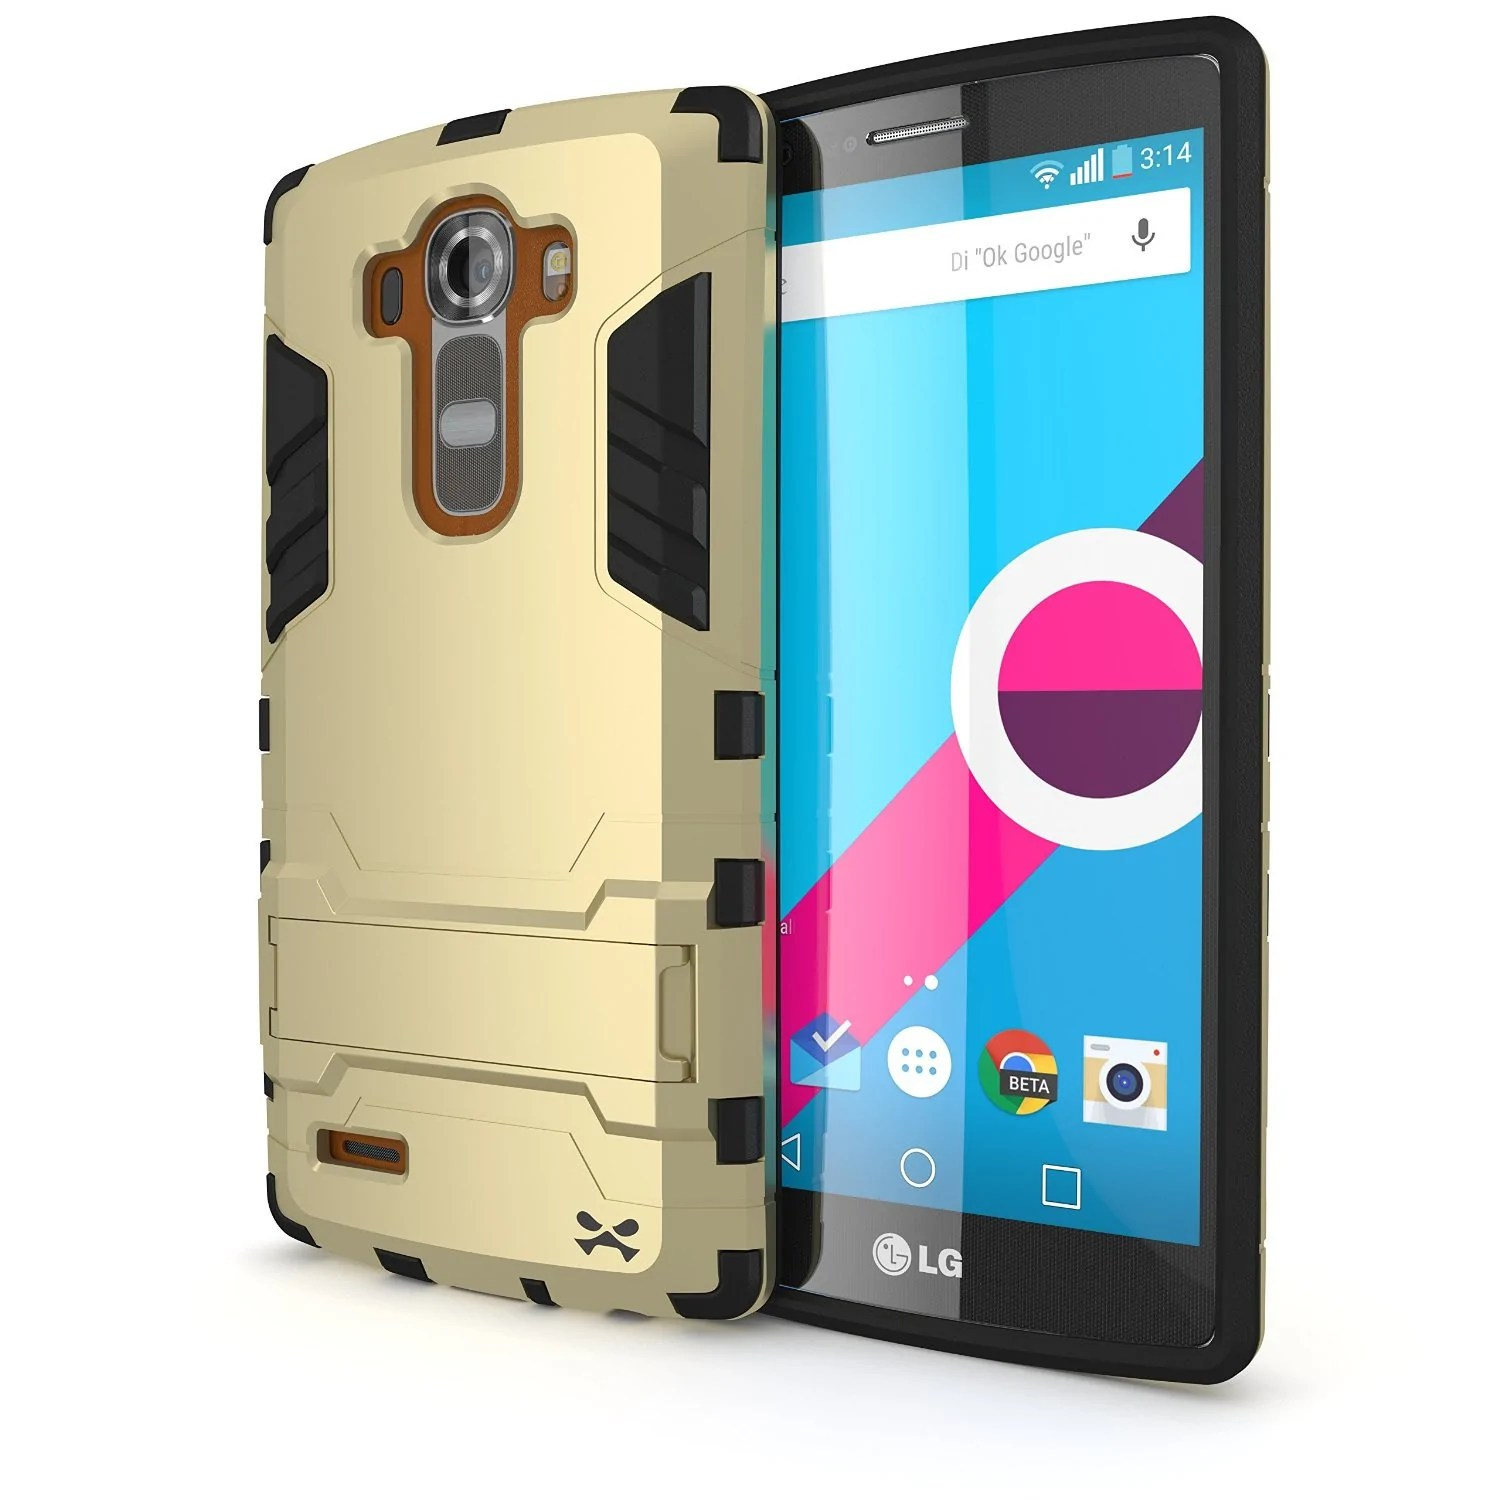 Lifeproof Case For Lg G4